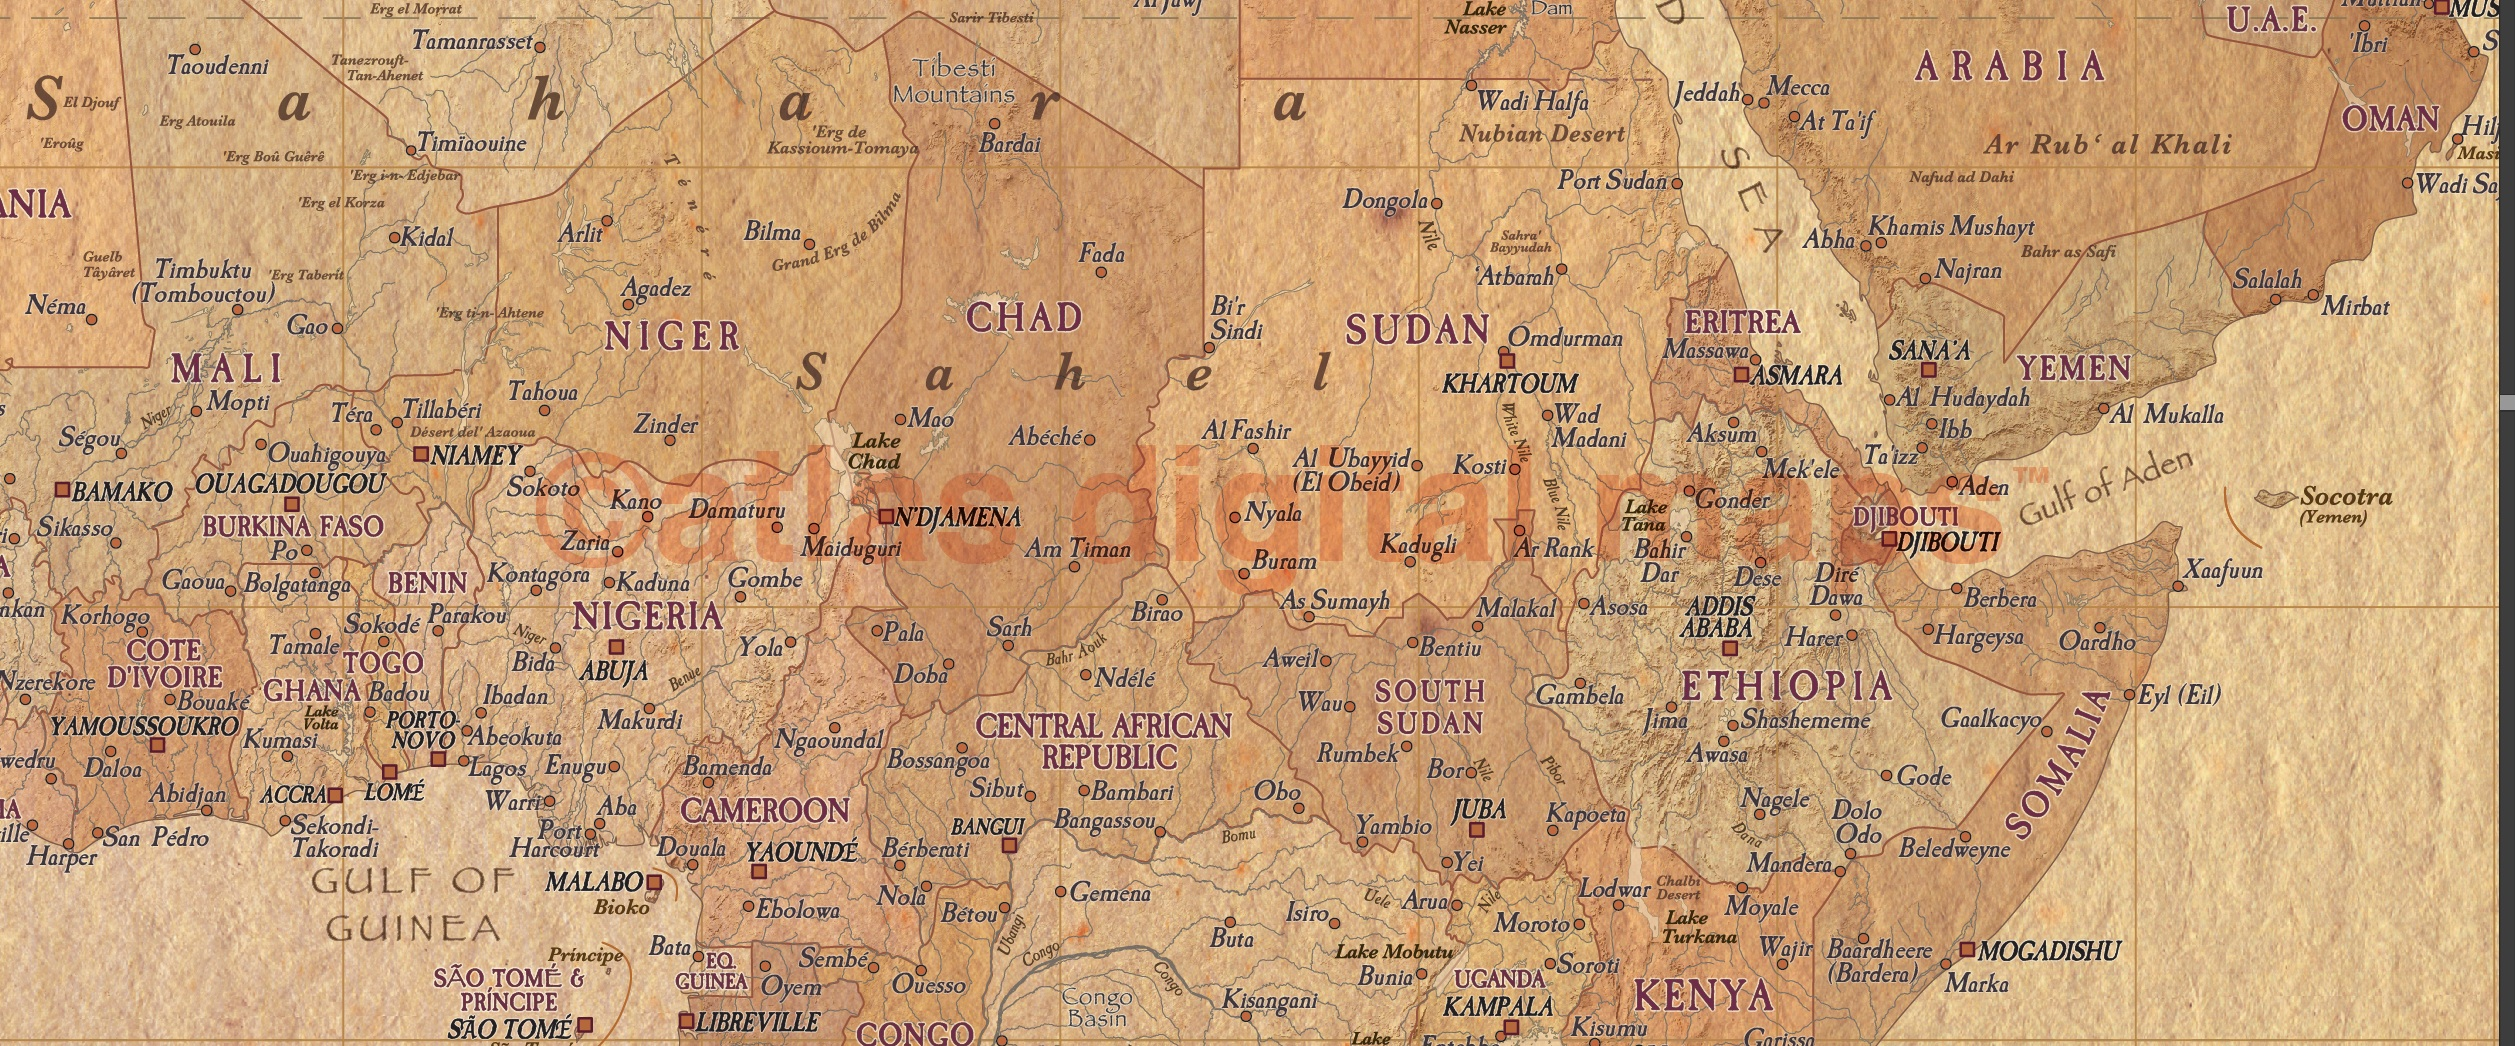 World wall map framed canvas tan antique style political relief 60 world wall map tan antique style framed canvas 60 inches wide x 38 inches deep gumiabroncs Choice Image